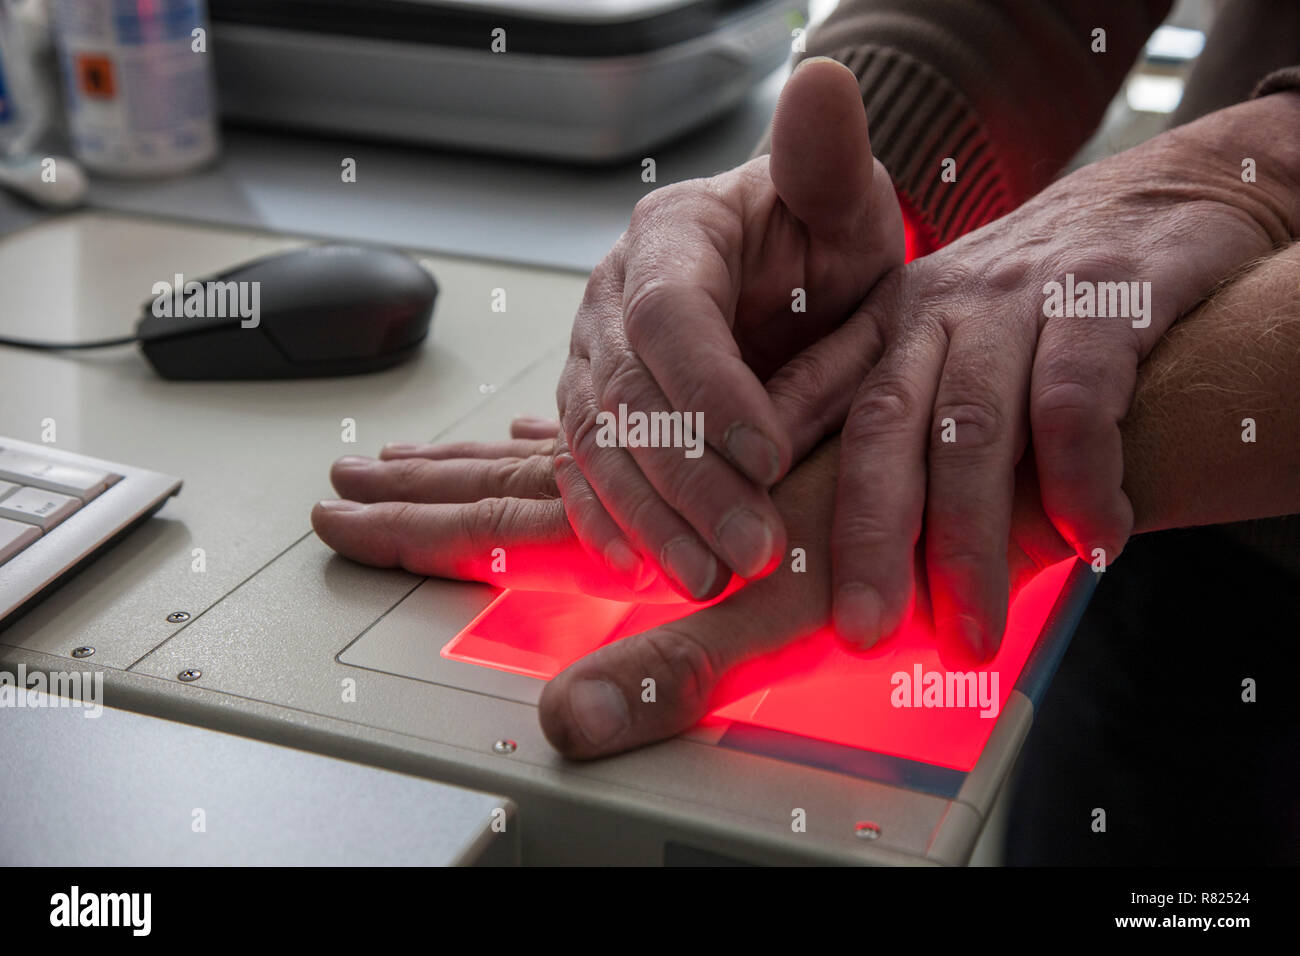 Fingerprints and palm prints of a suspicious person are recorded with a scanner, Germany - Stock Image